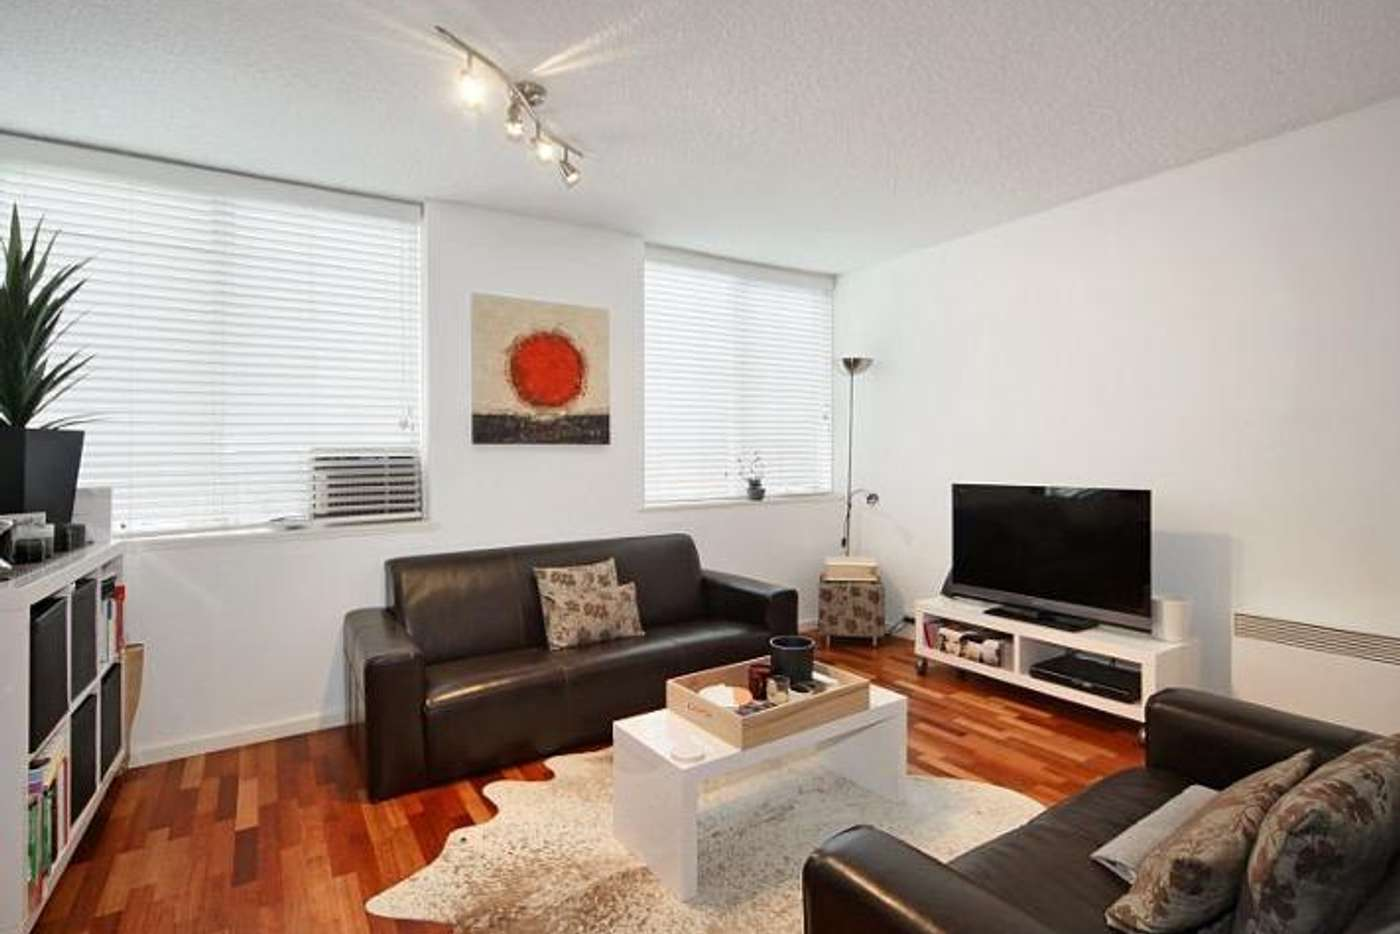 Main view of Homely apartment listing, 9/23 Tivoli Road, South Yarra VIC 3141